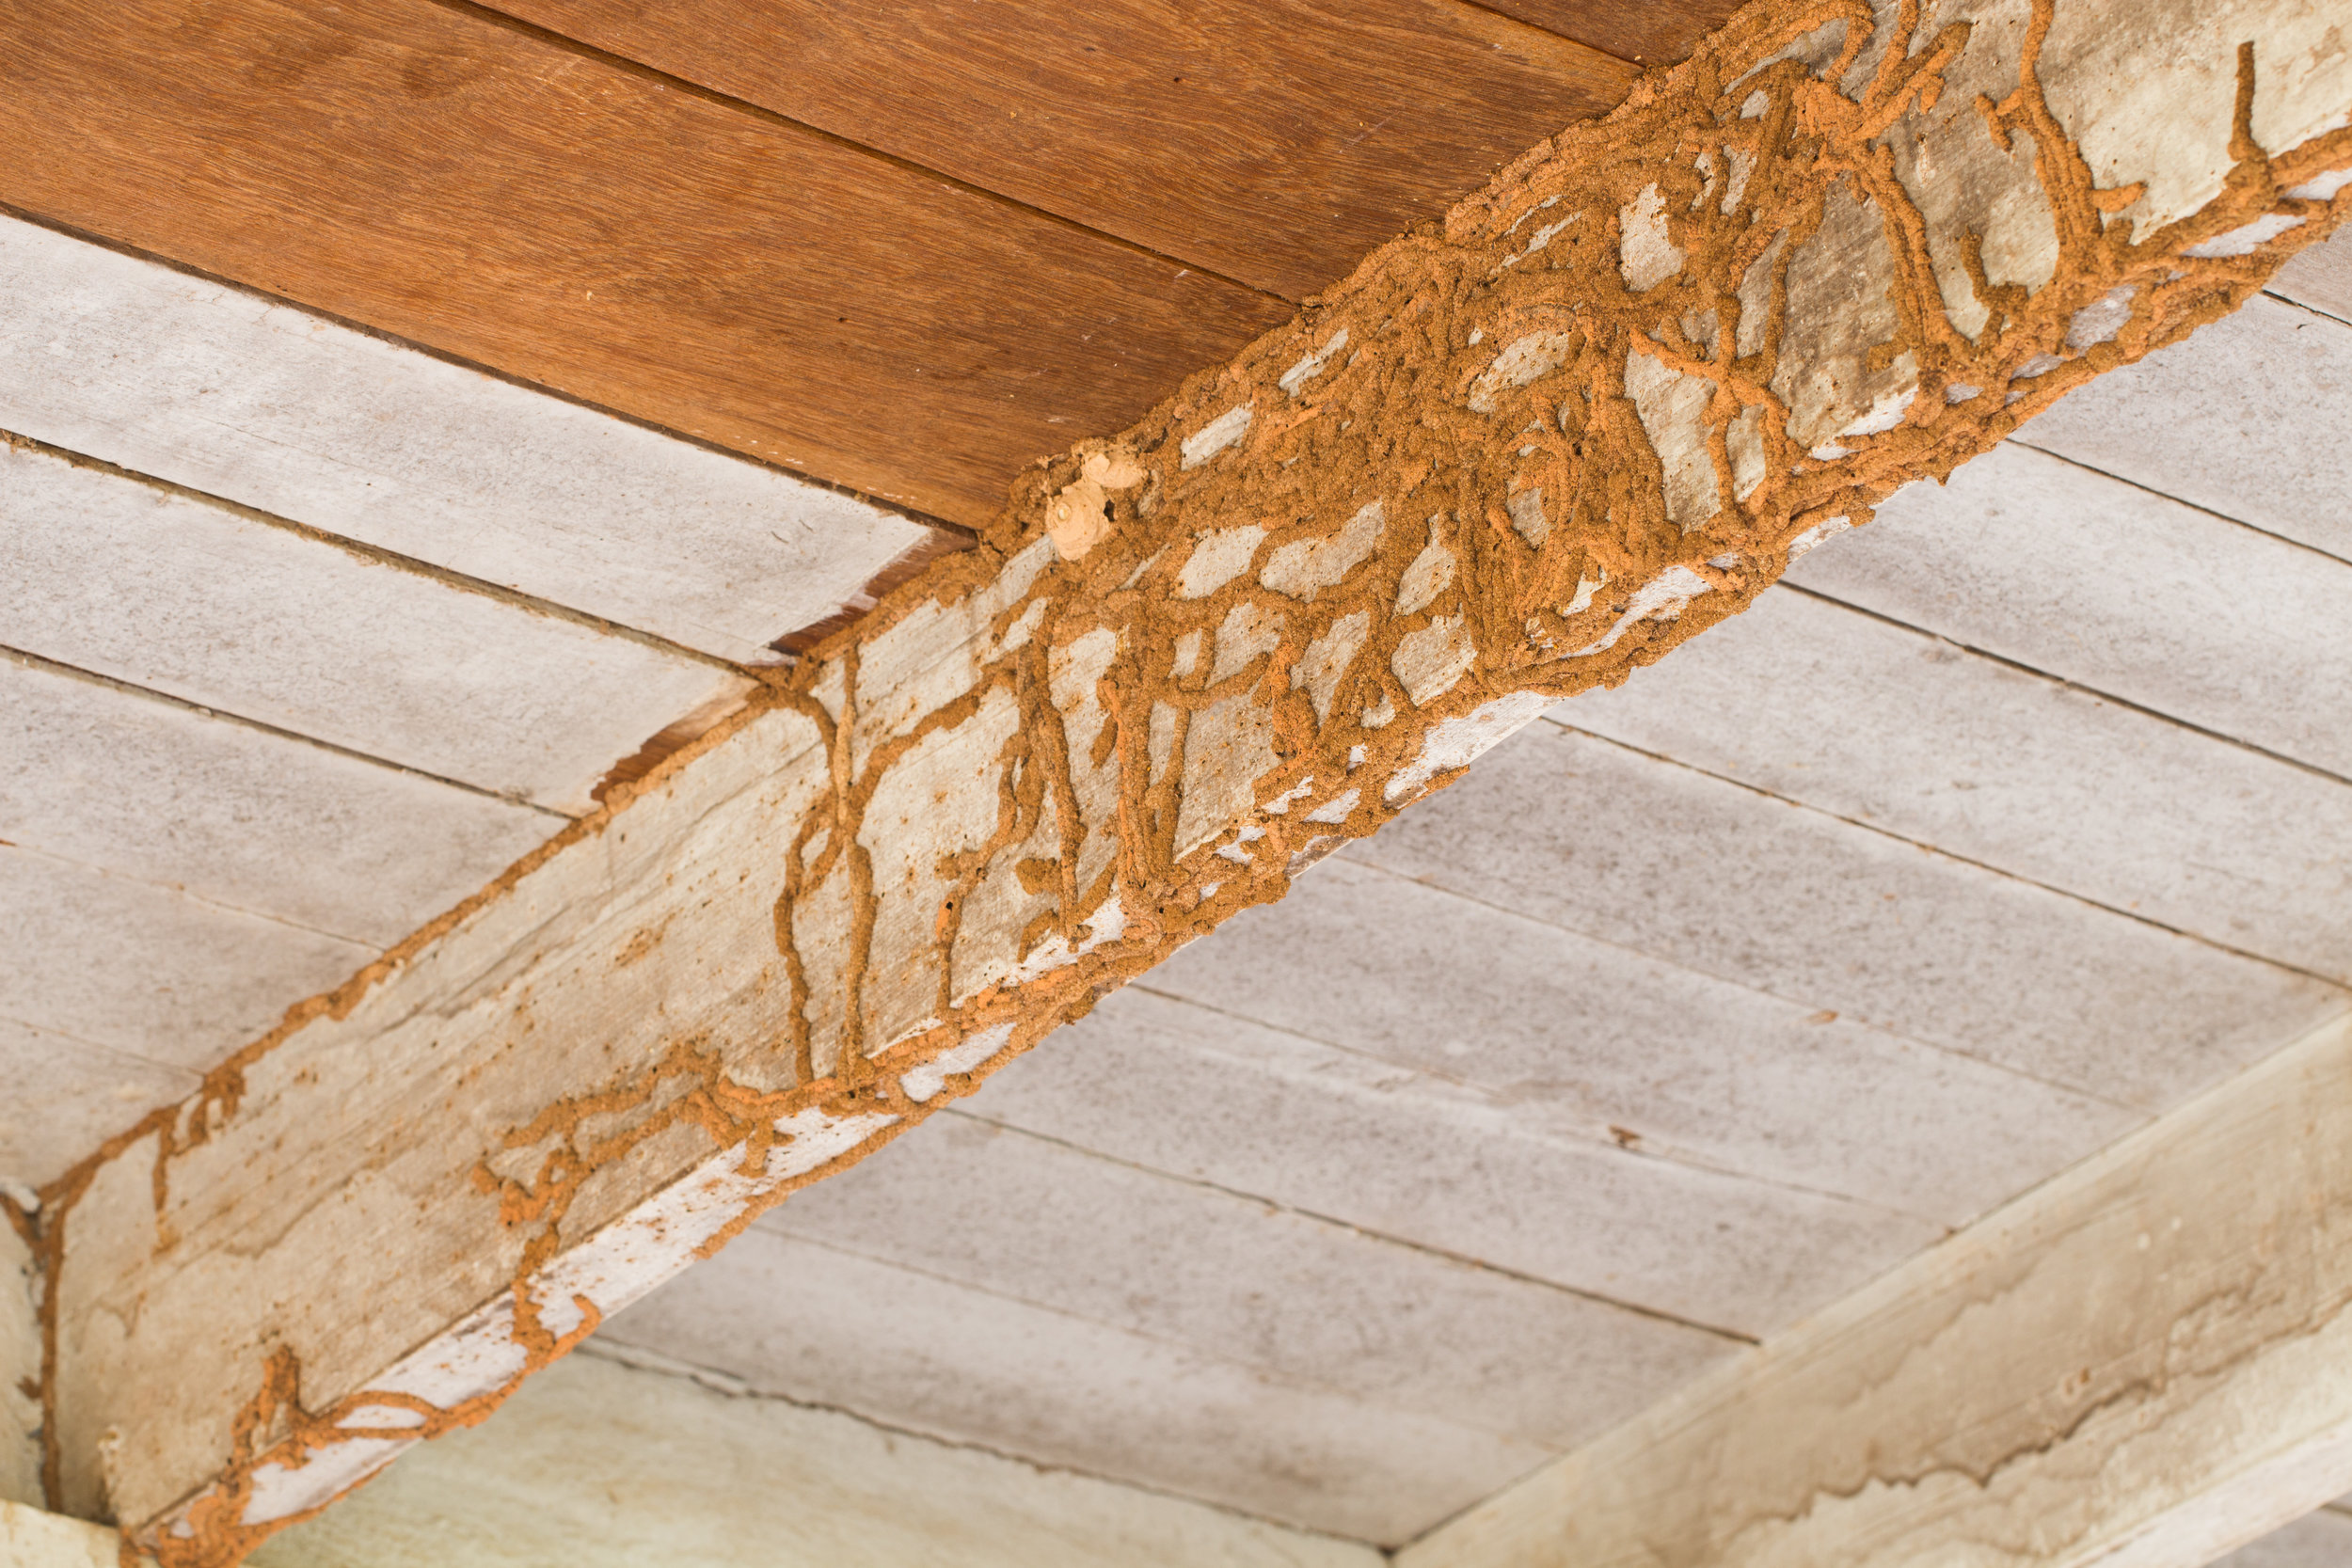 Questions You Need to Ask Before Hiring a Termite Extermination Company in NYC